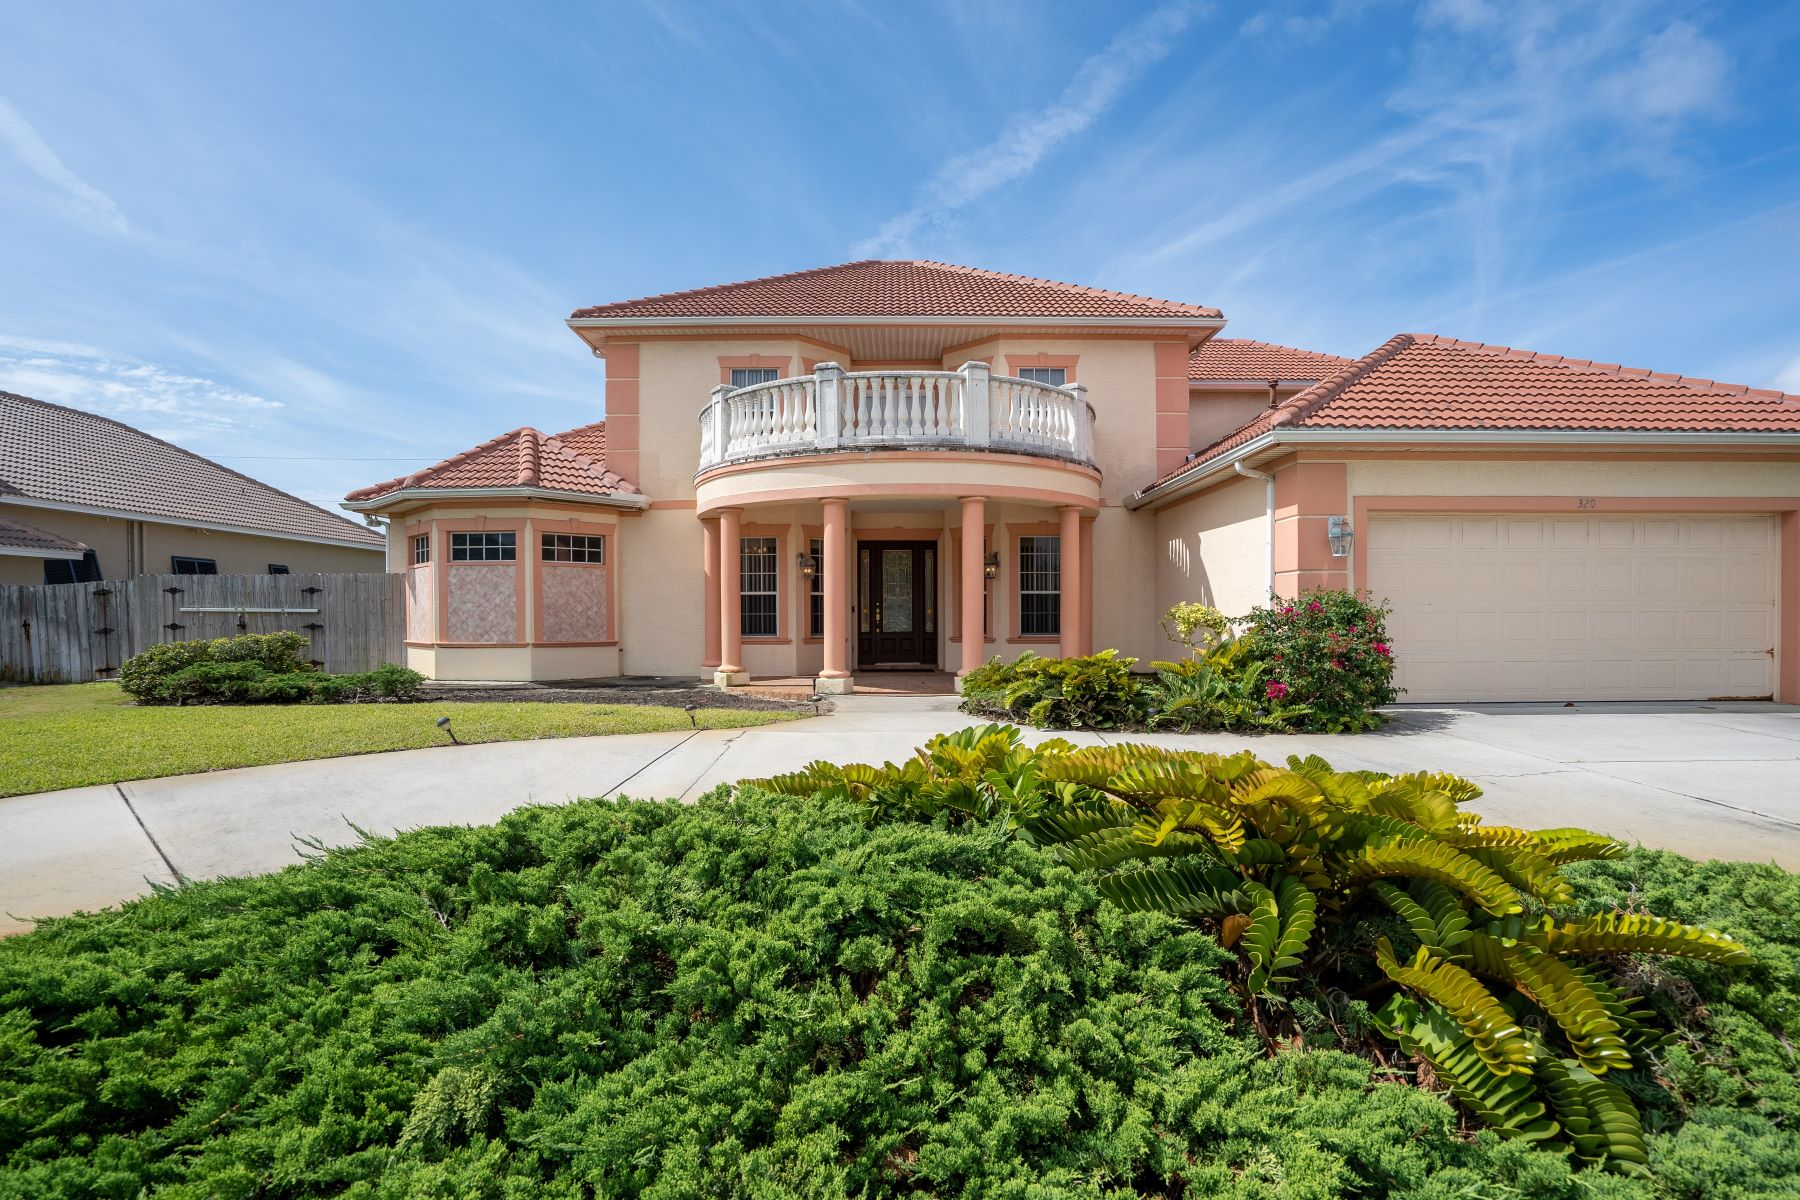 Property for Sale at 320 Rio Villa Boulevard, Melbourne, FL 320 Rio Villa Boulevard Melbourne, Florida 32903 United States